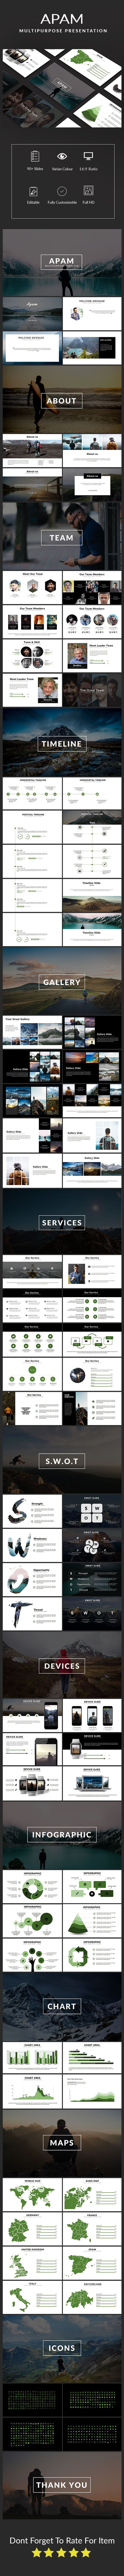 Apam Multipurpose Template - PowerPoint Templates Presentation Templates